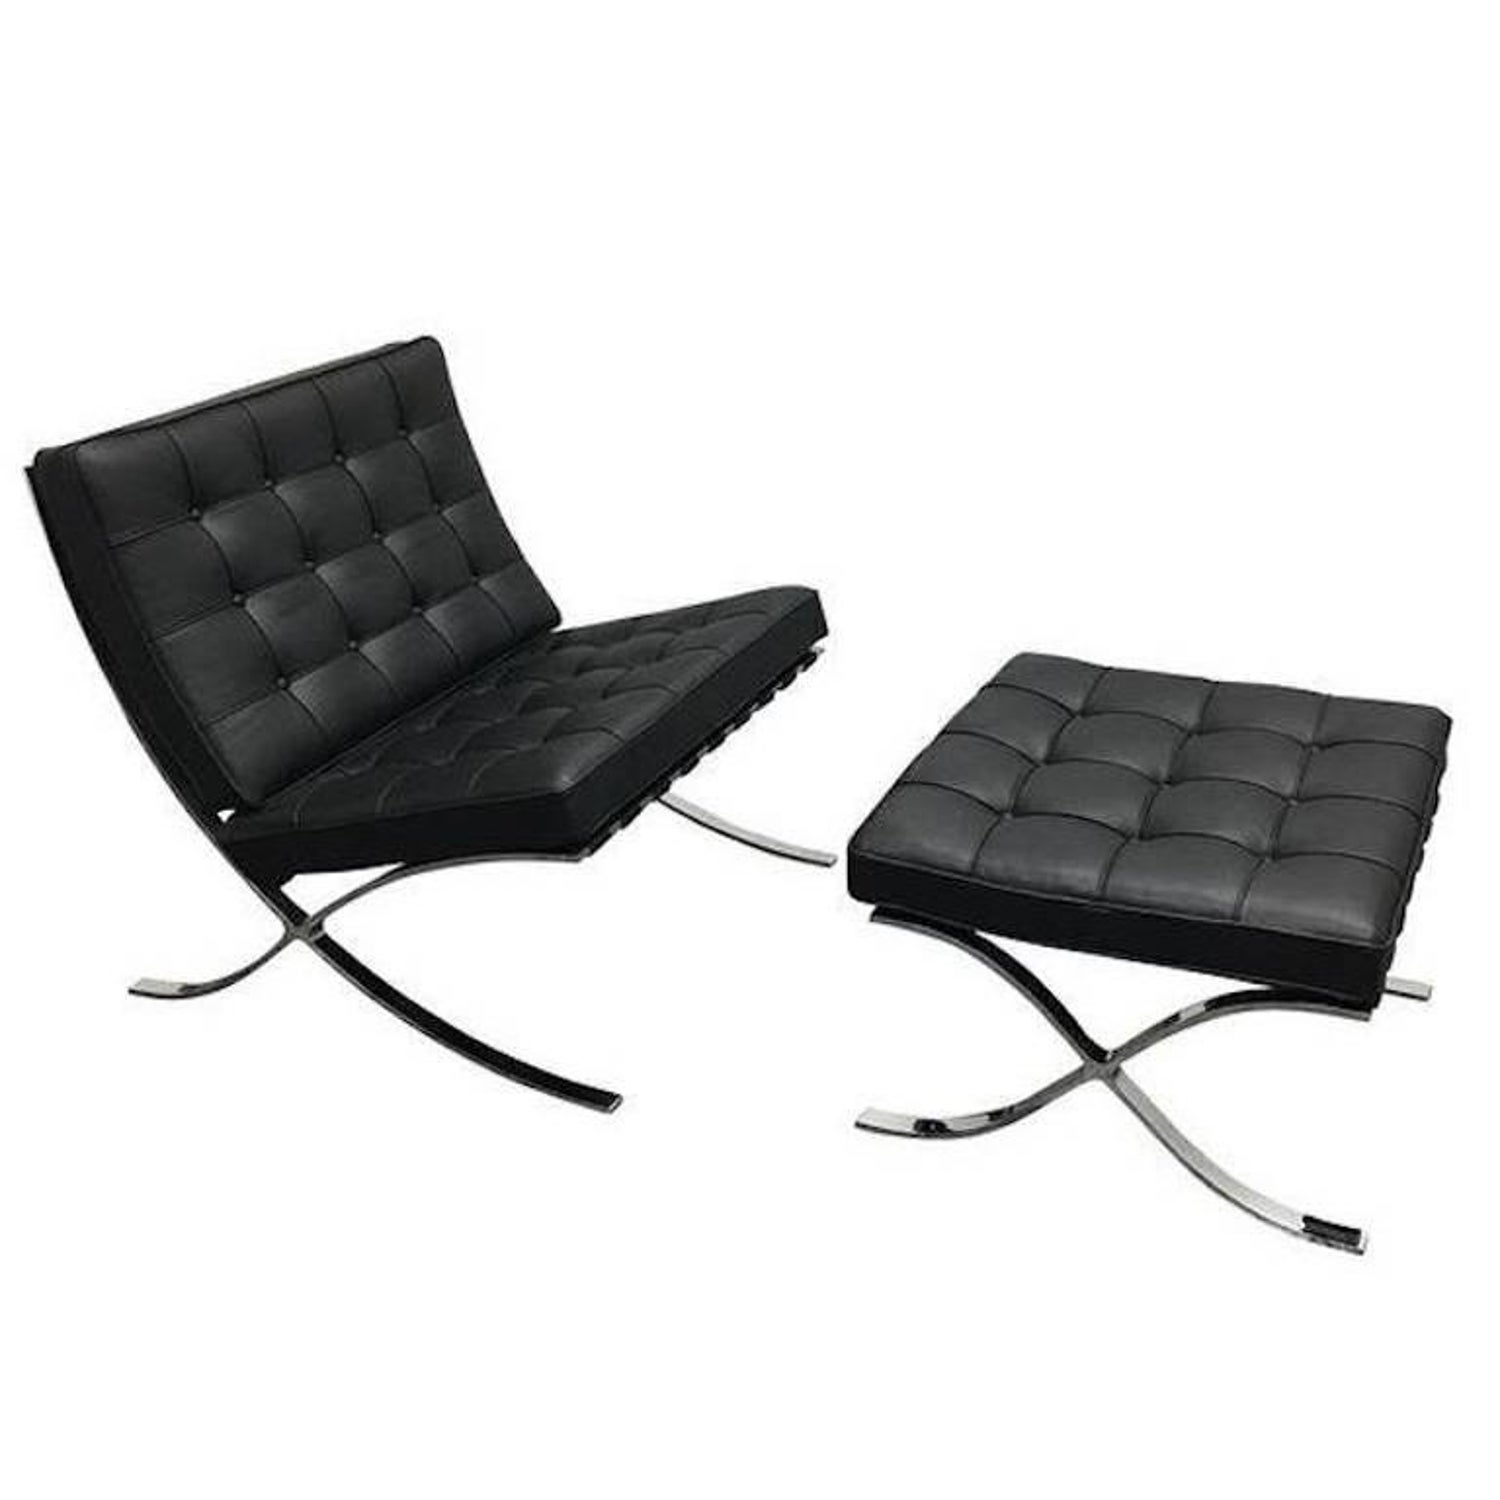 Tremendous Ludwig Mies Van Der Rohe Barcelona Chair And Ottoman At 1Stdibs Caraccident5 Cool Chair Designs And Ideas Caraccident5Info